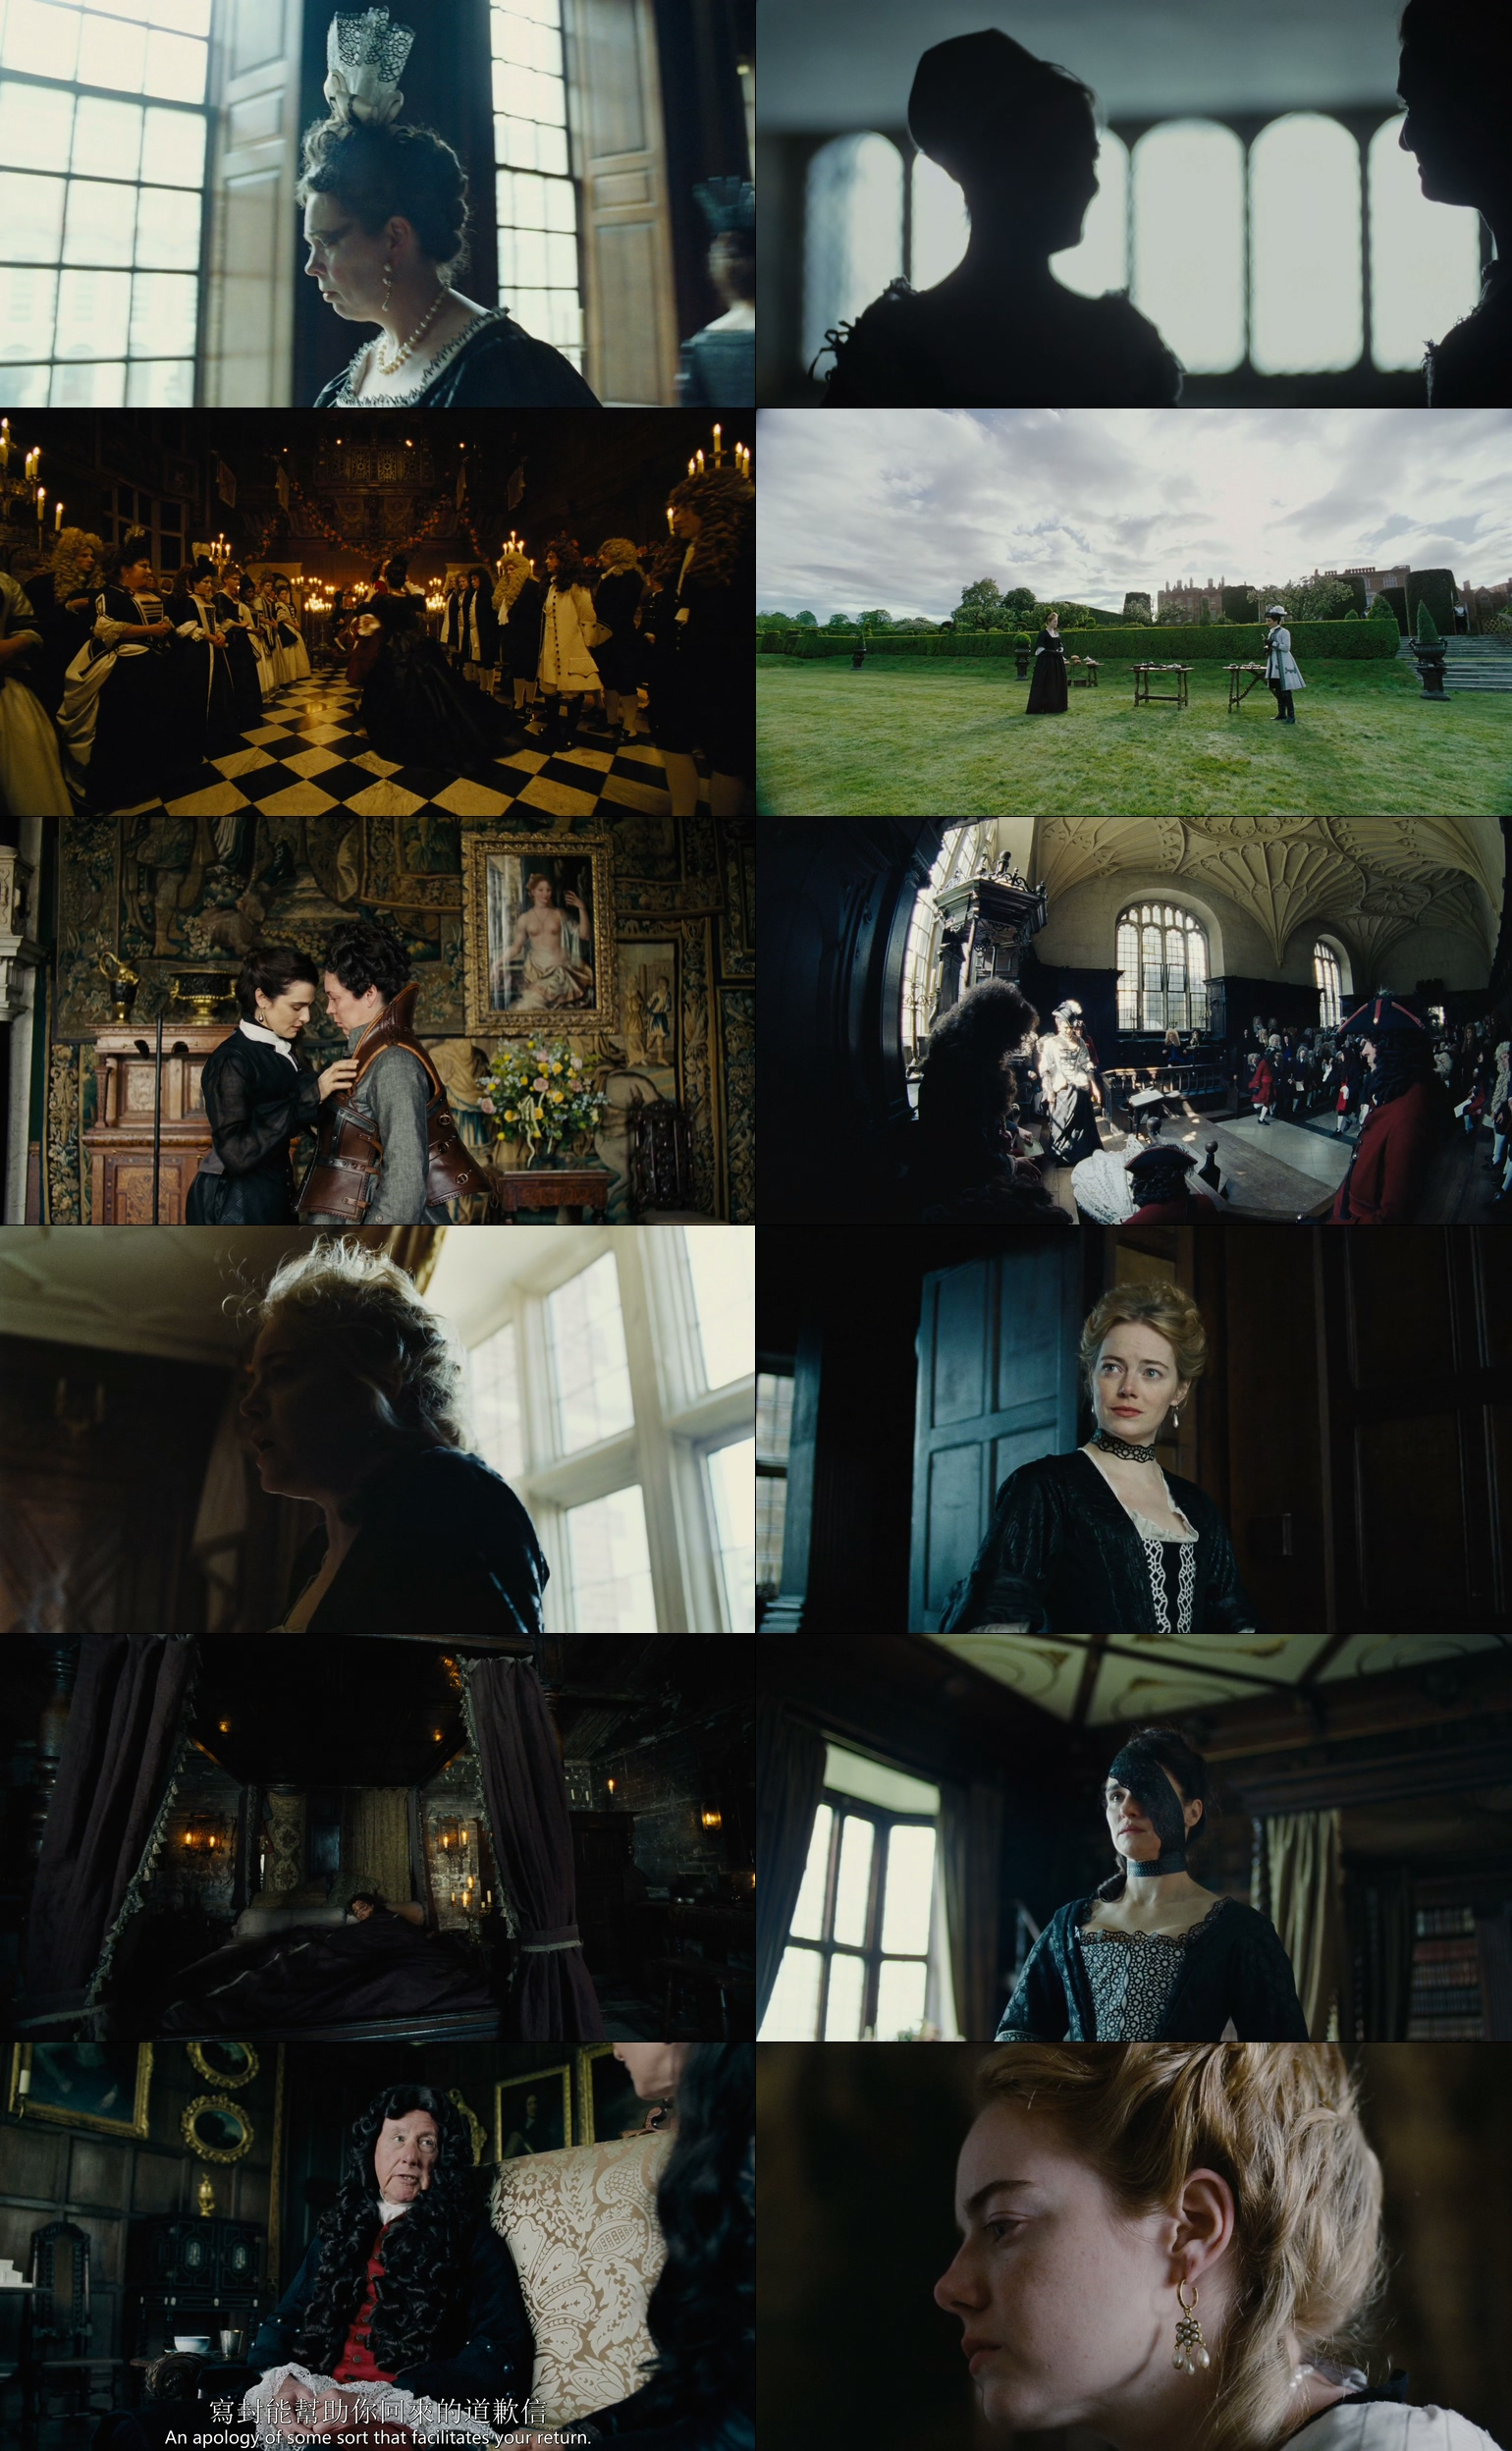 The.Favourite.2018.1080p.WEB-DL.DD5.1.H264-FGT